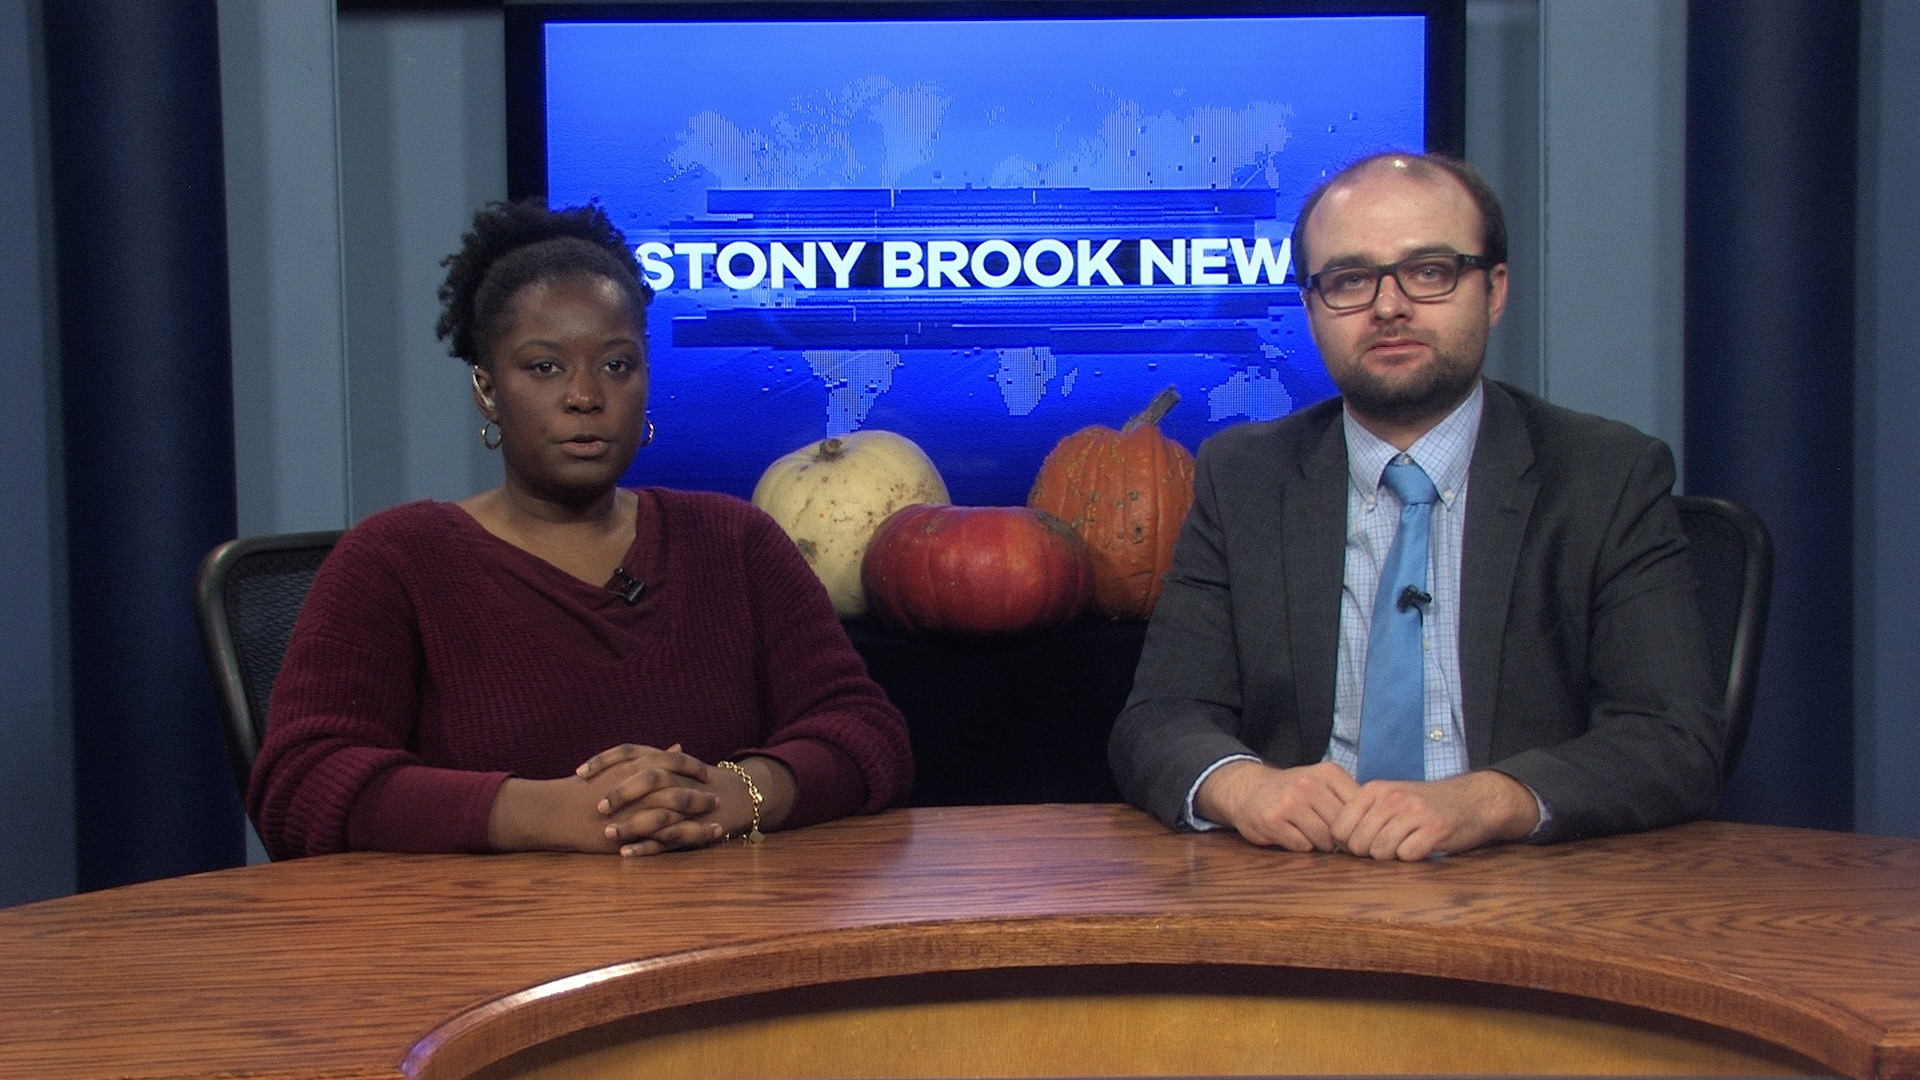 Stony Brook News — October 29, 2018